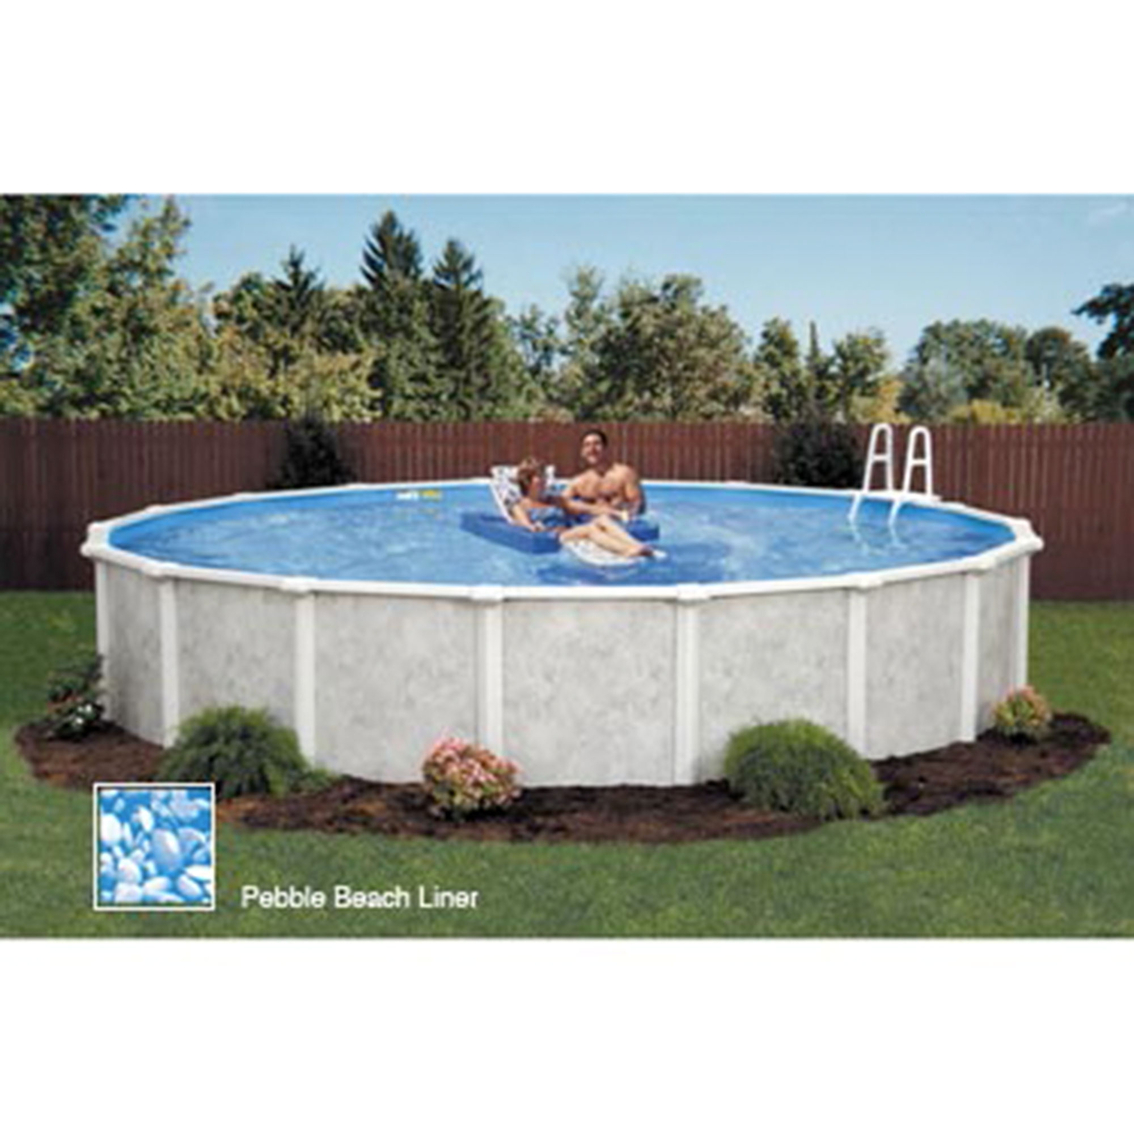 Lomart grey mist round above ground swimming pool package for Above ground pool deals